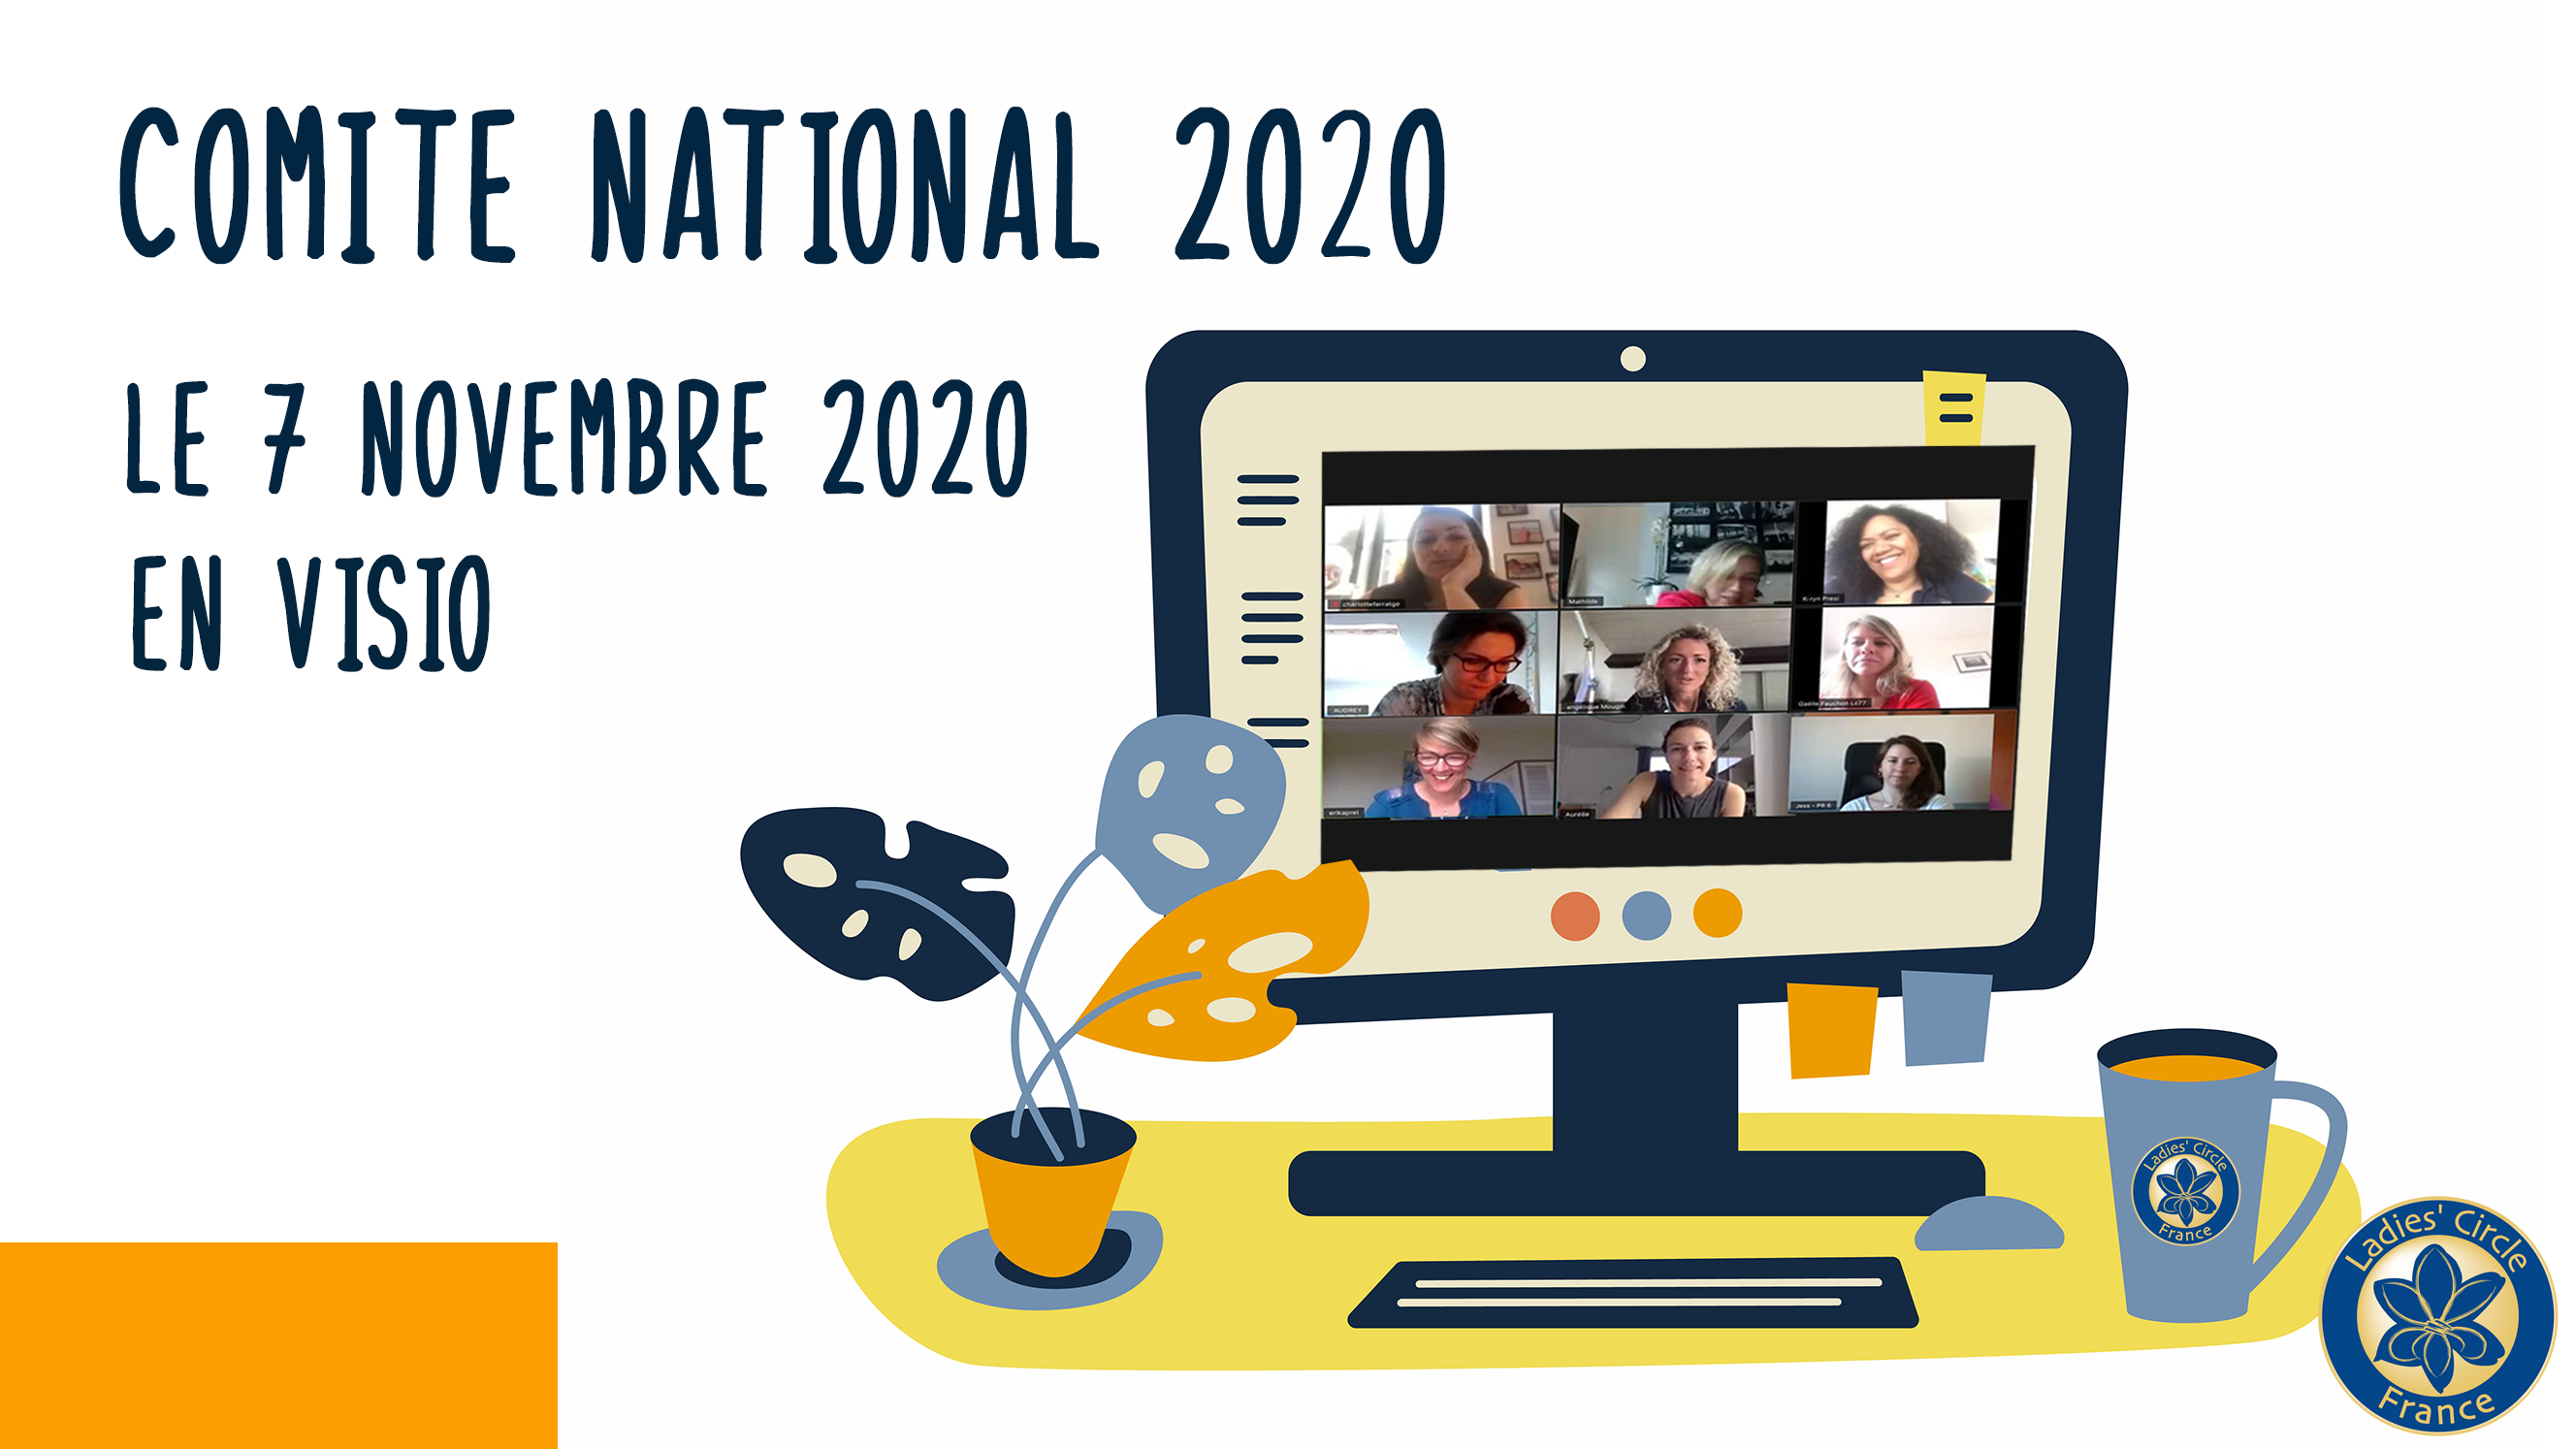 Un comité national en visio